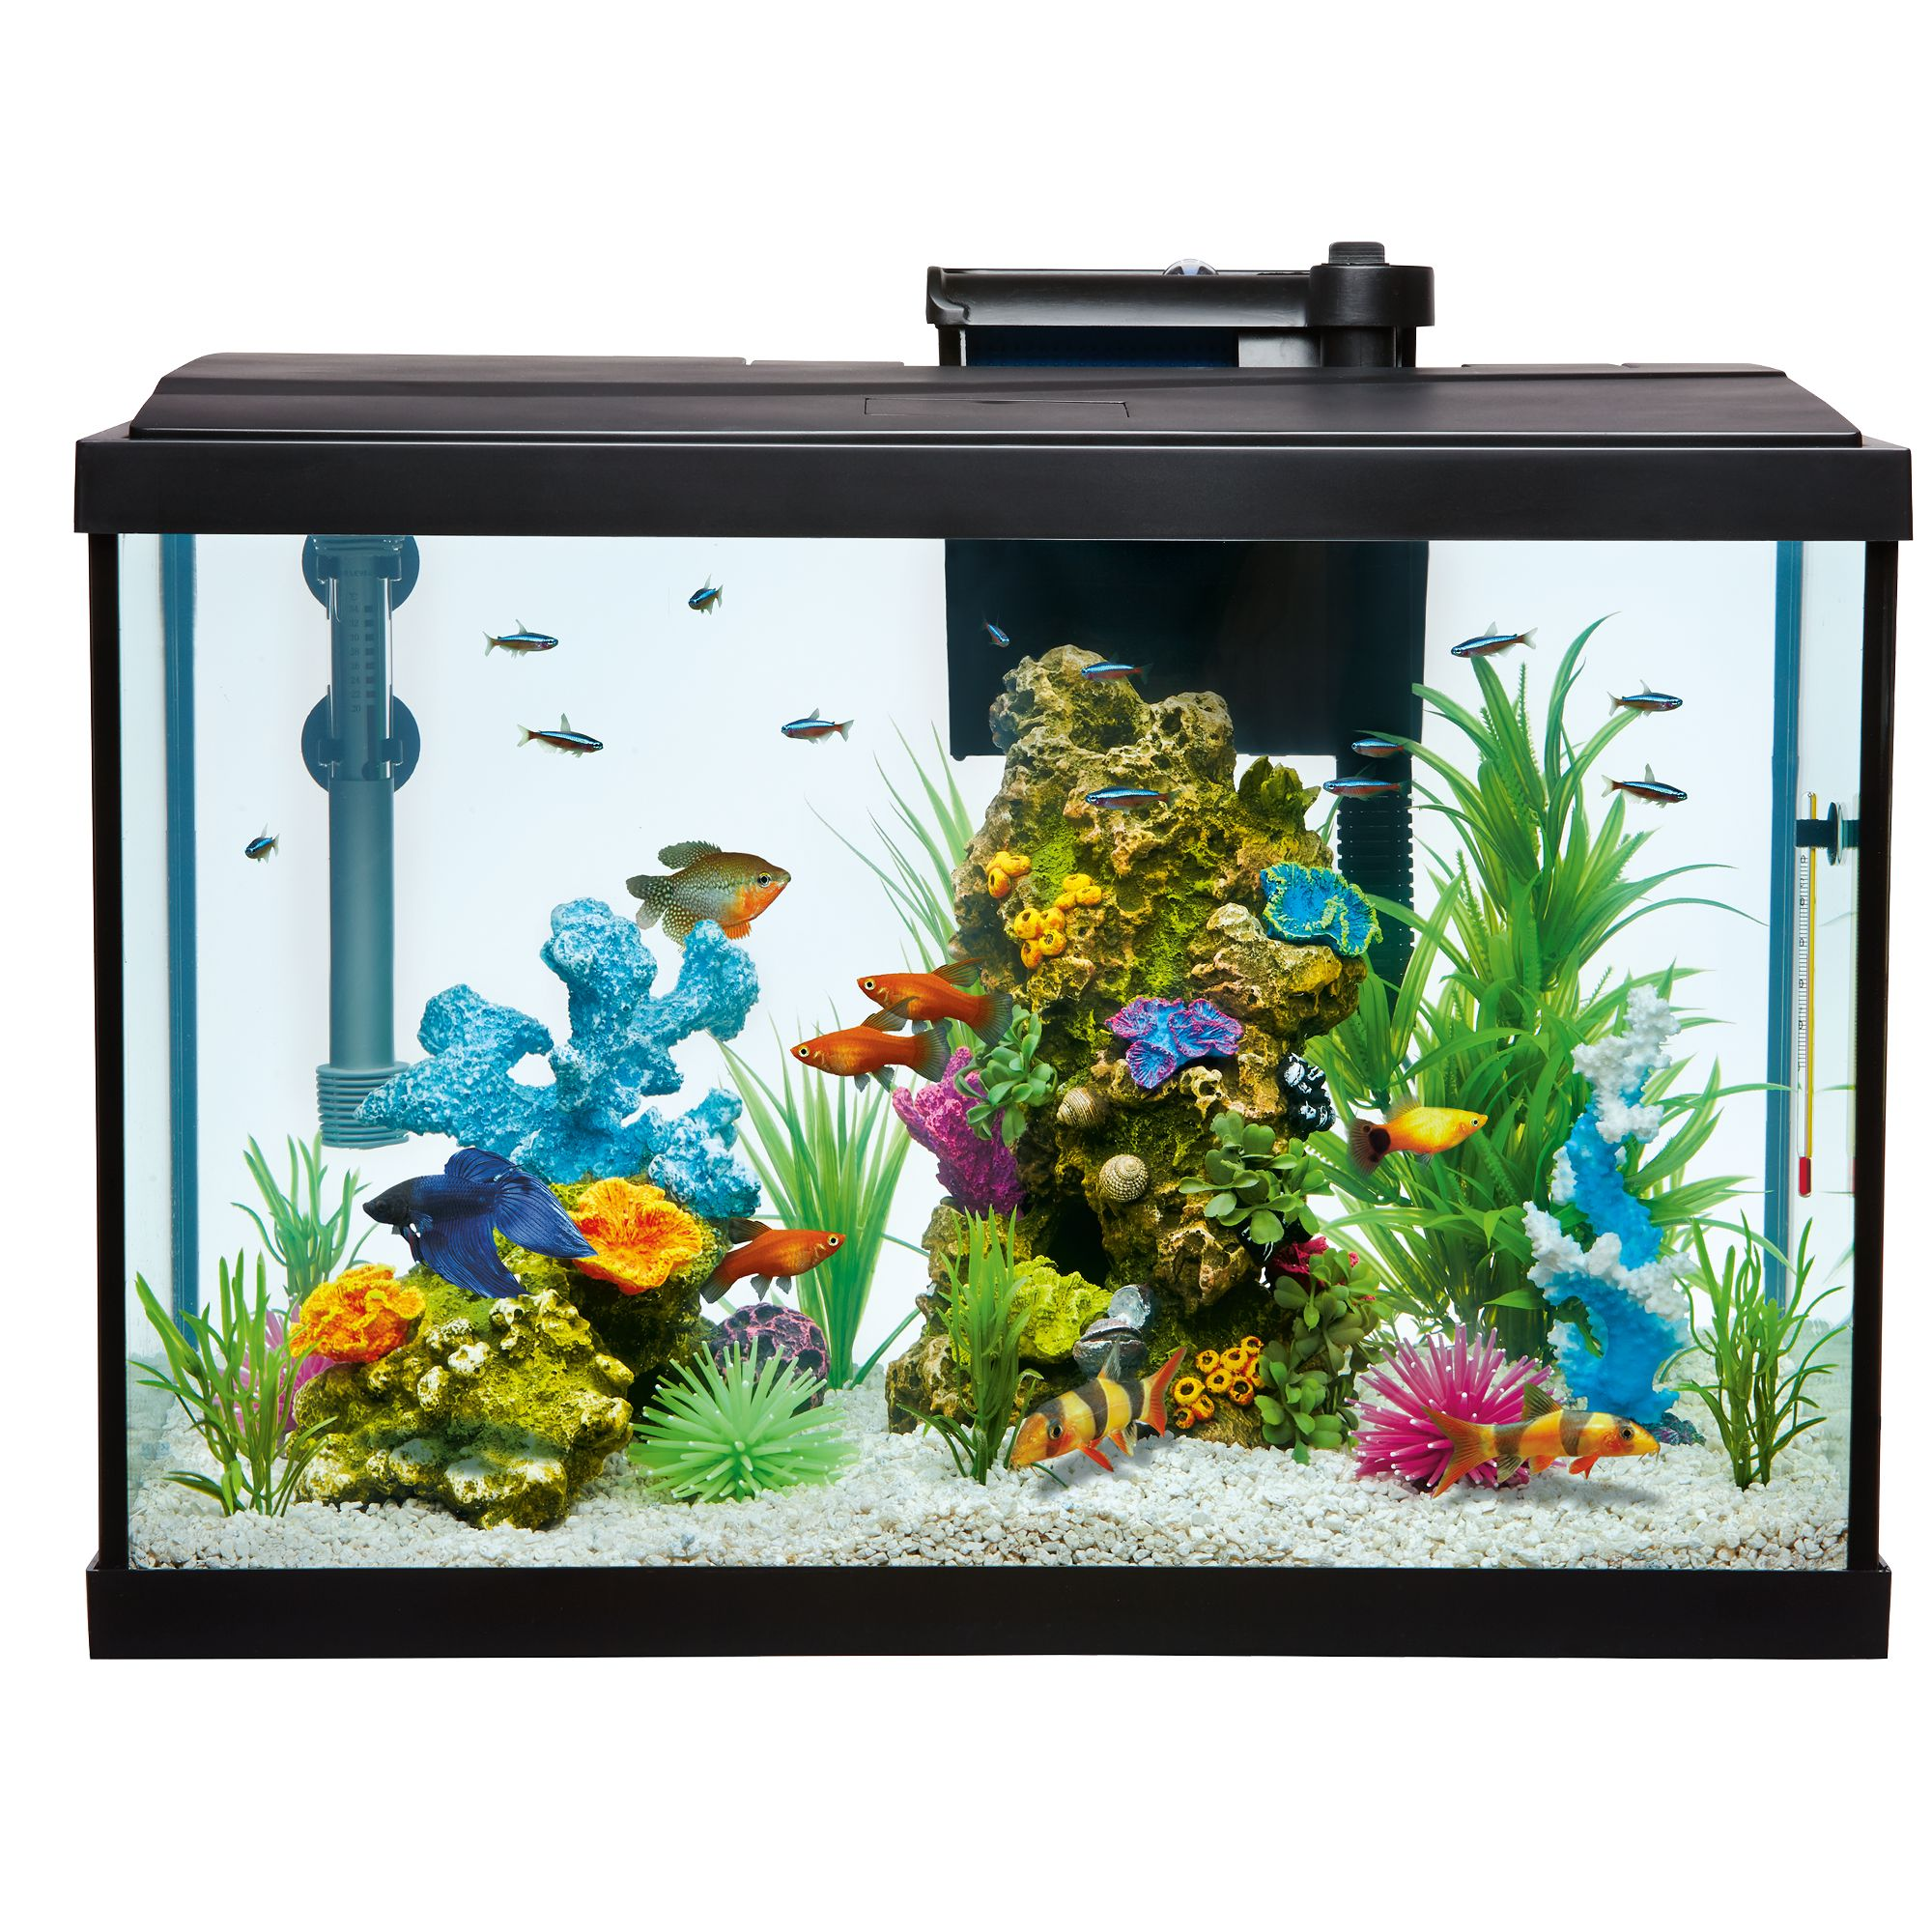 Top Finreg 20 Gallon Aquarium Starter Kit size 20 Gal